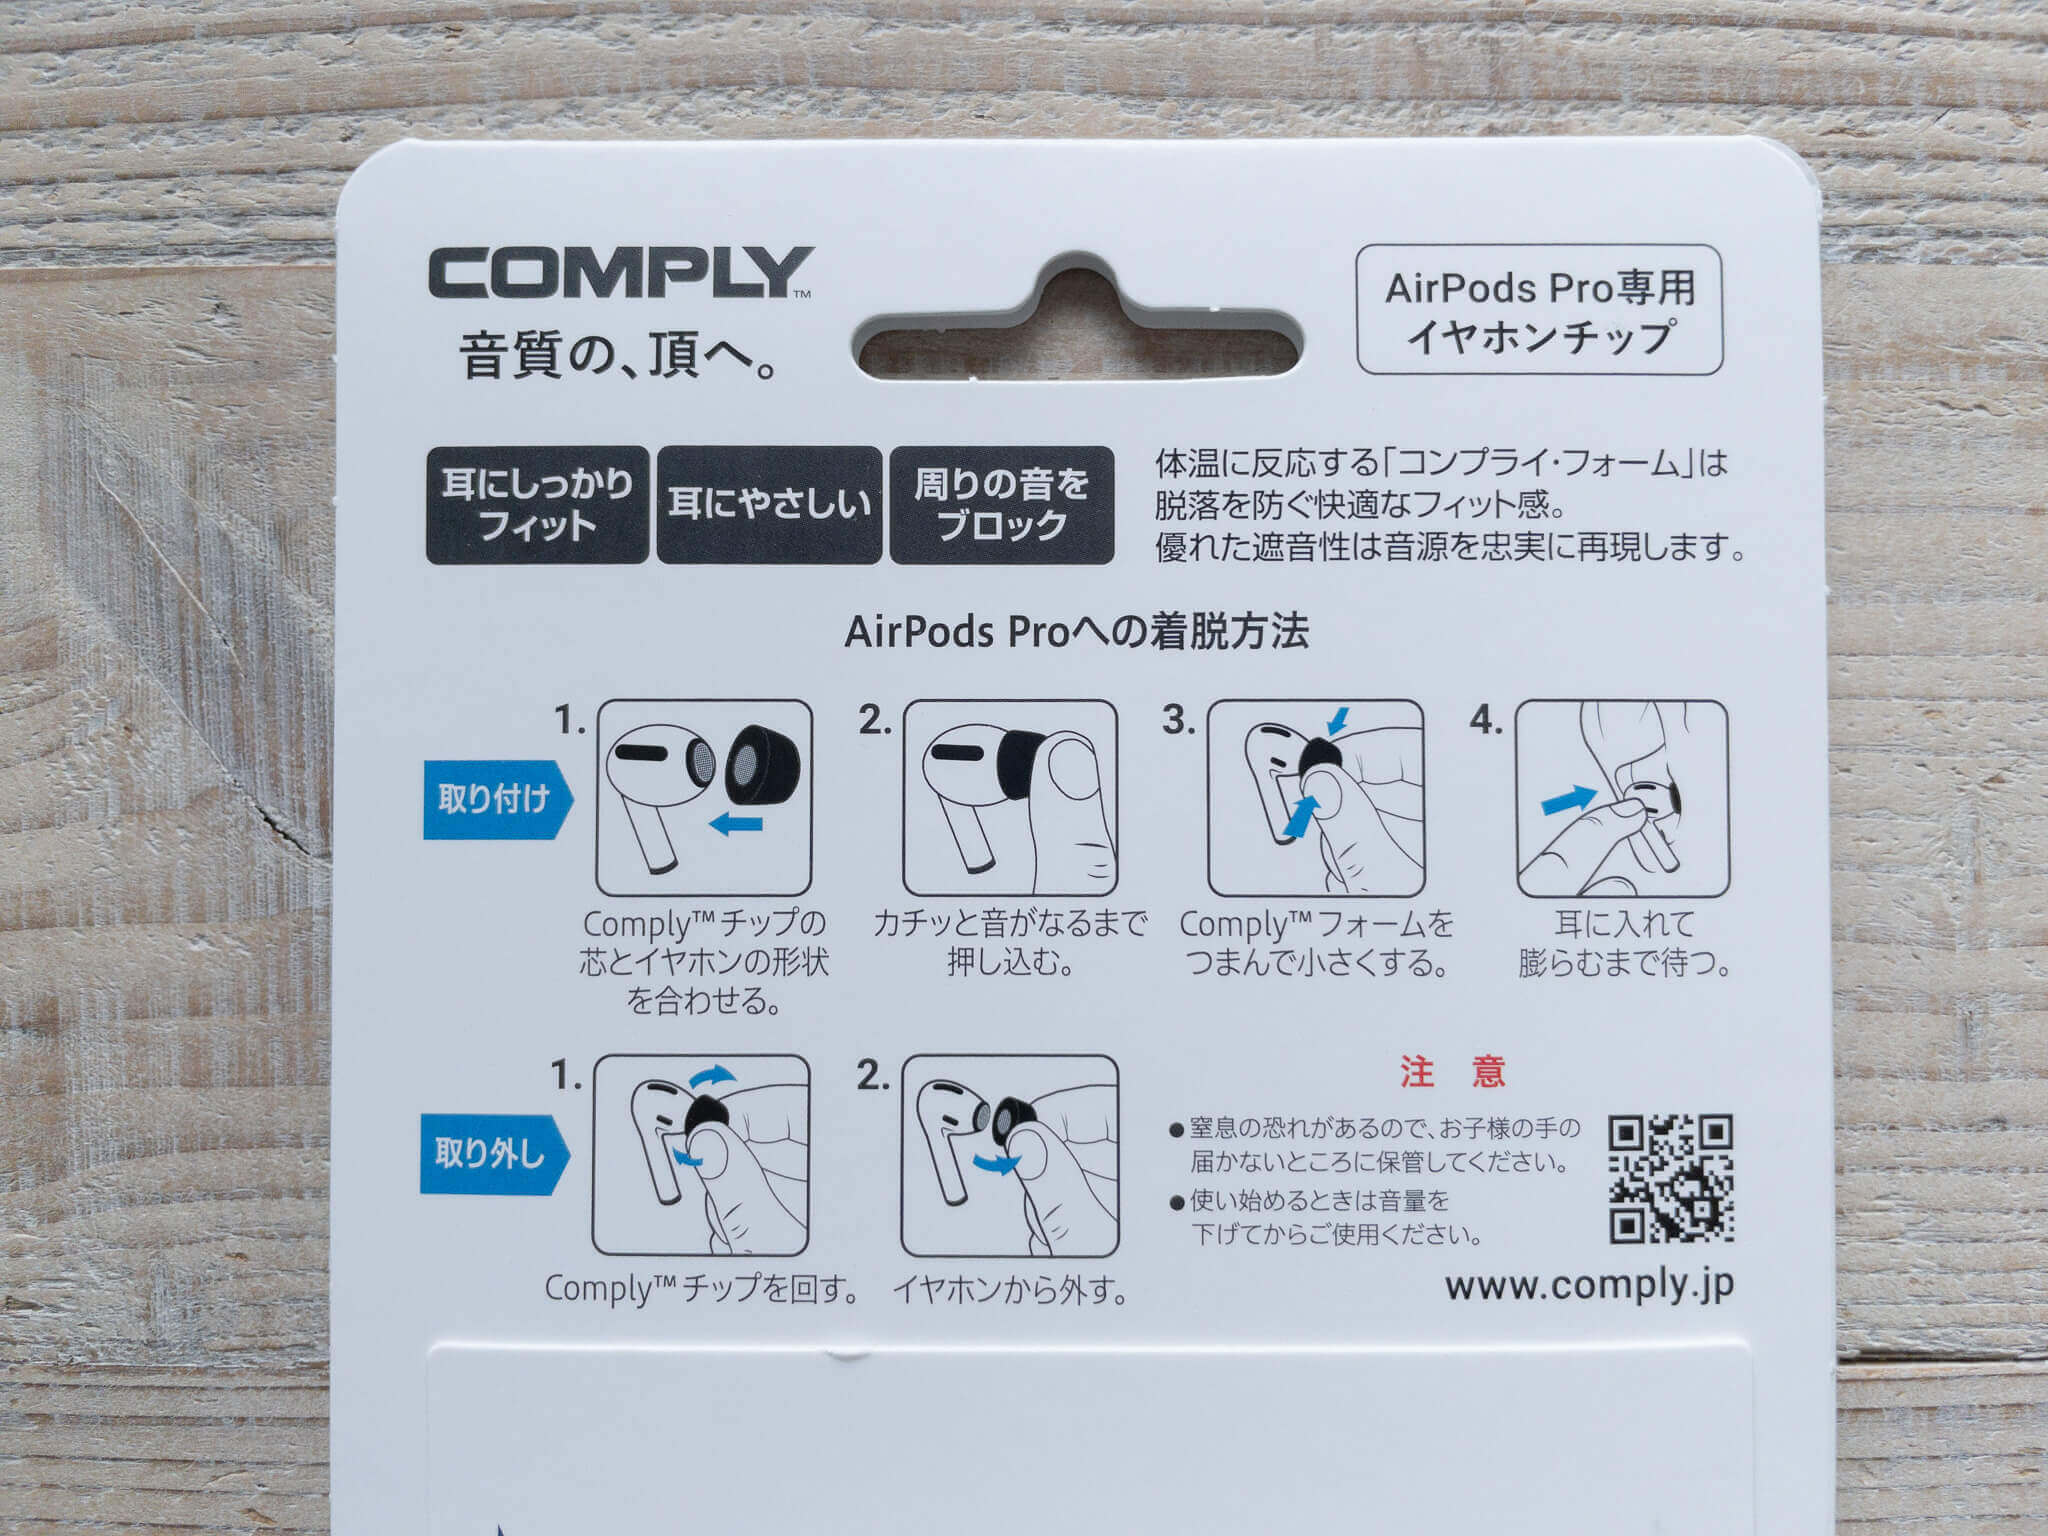 210314 comply airpods pro 2